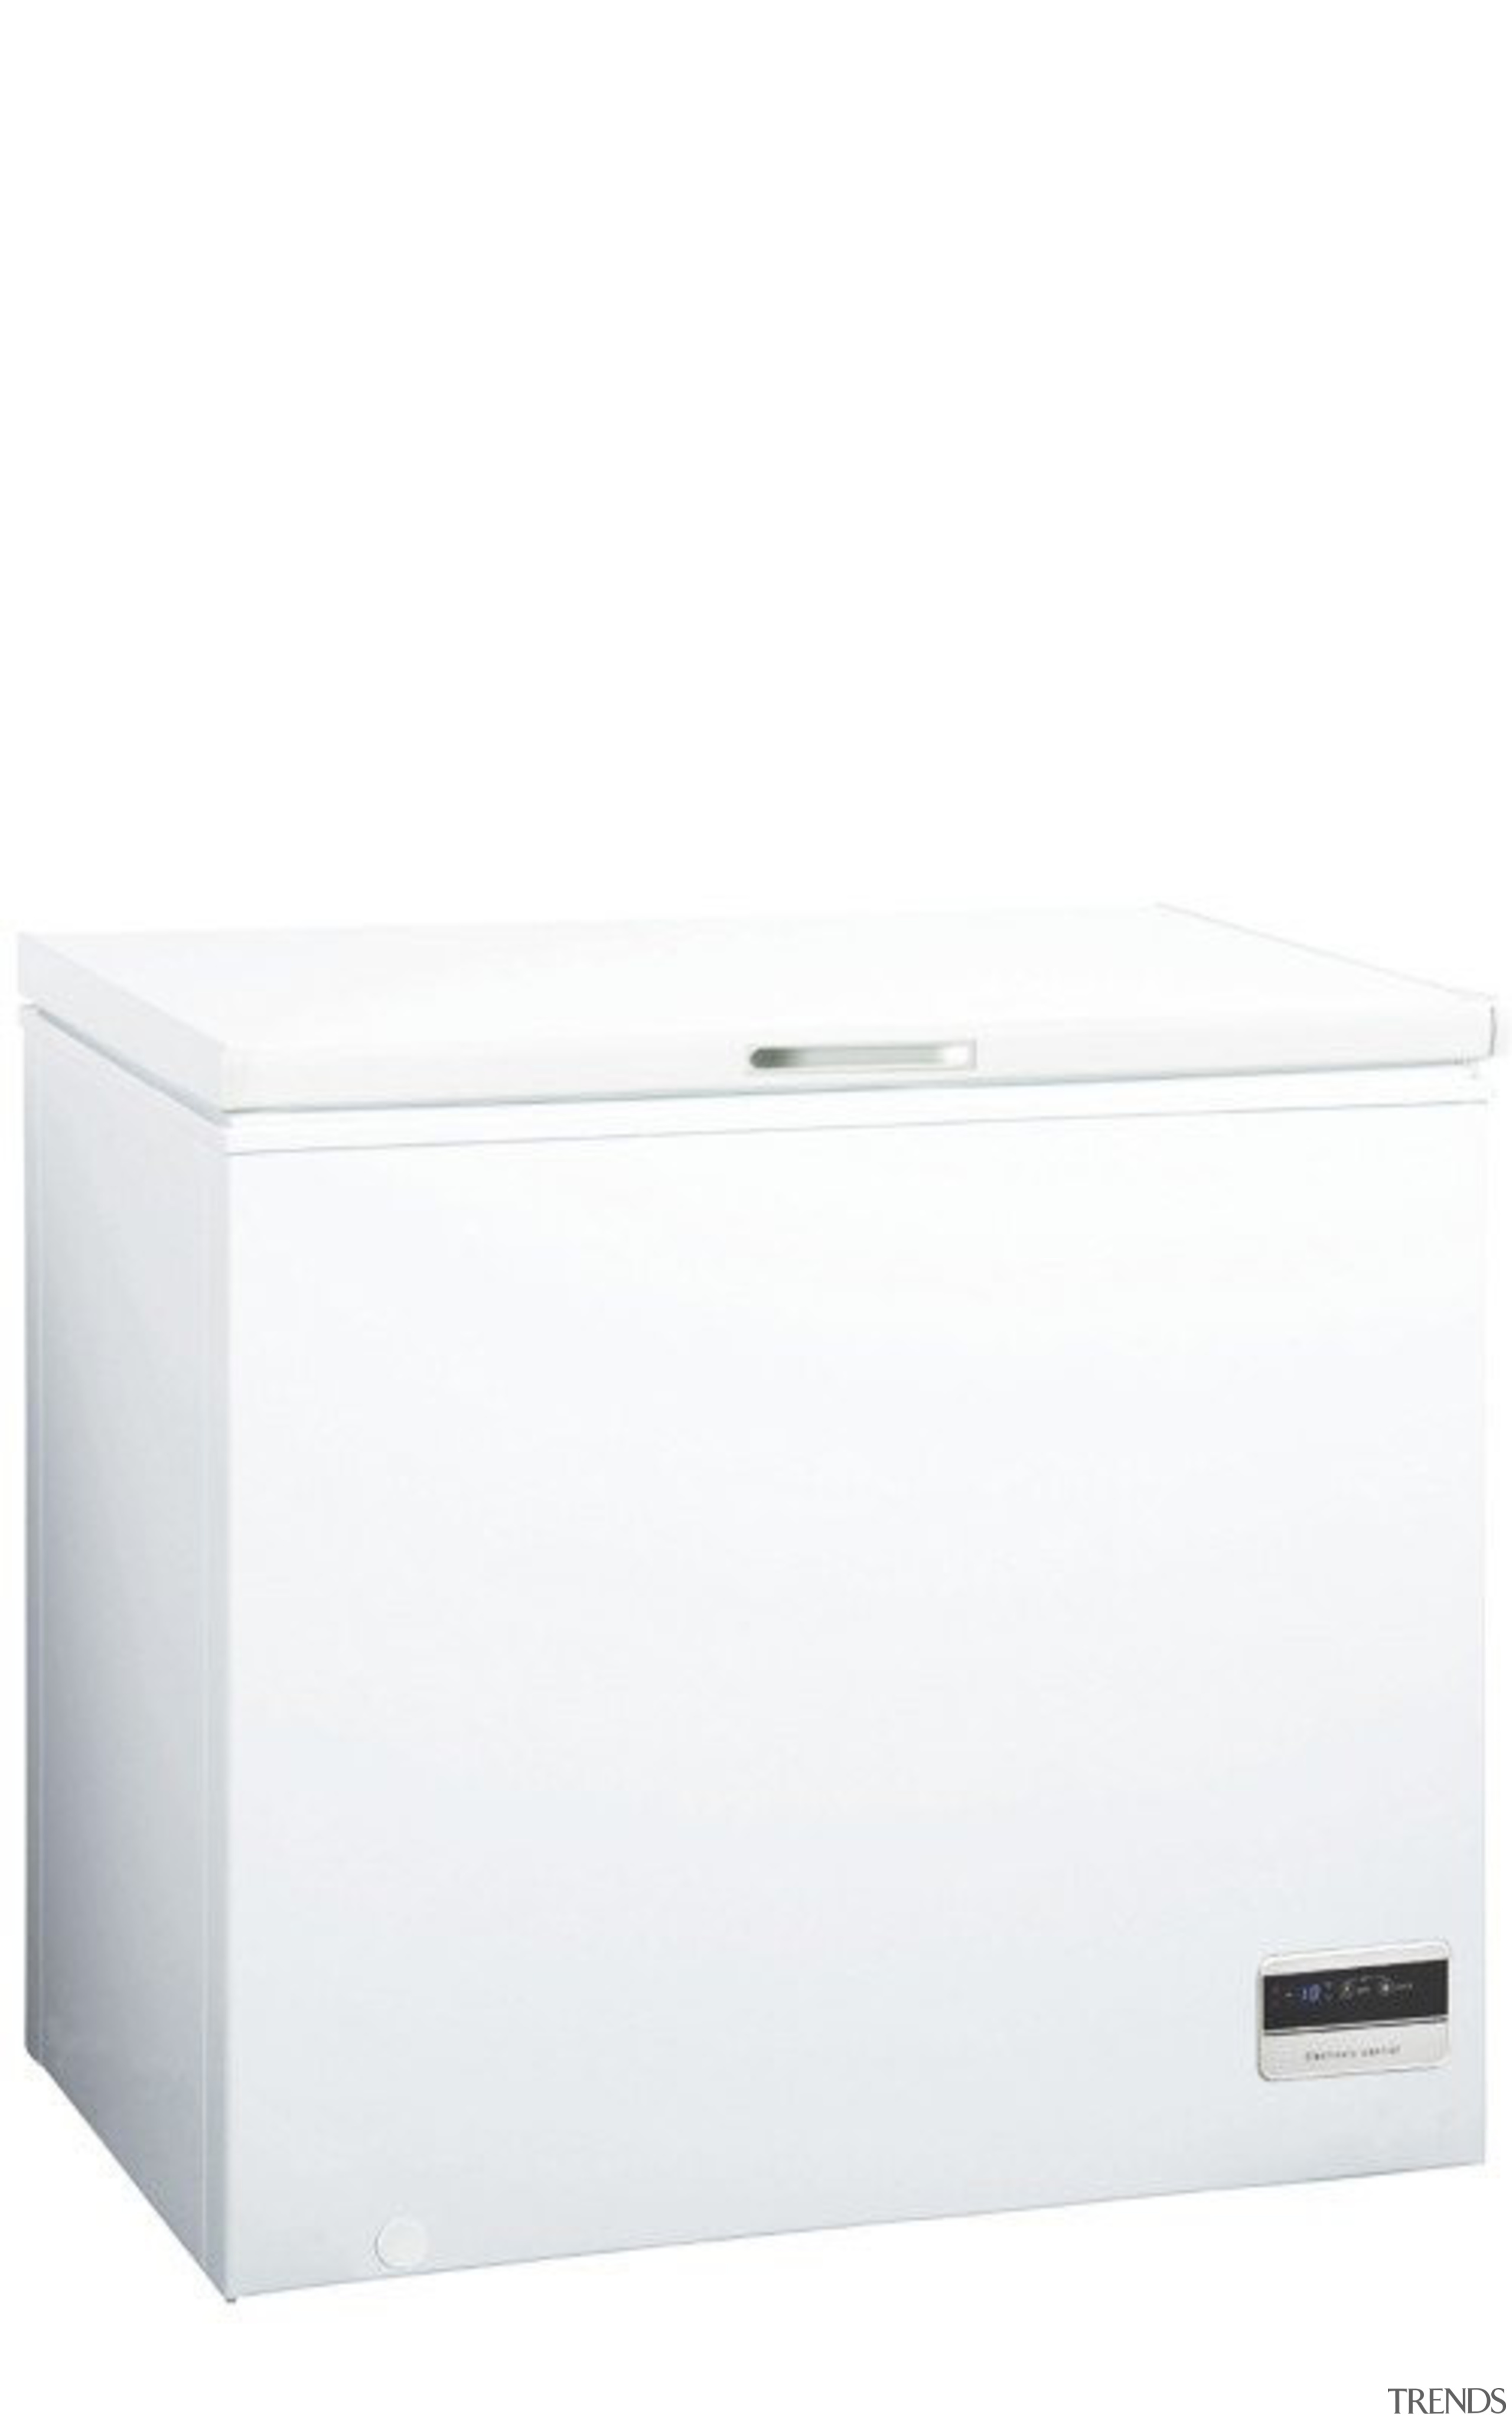 200L Chest FreezerGross Capacity: 200LDigital Control & Display drawer, furniture, product, product design, white